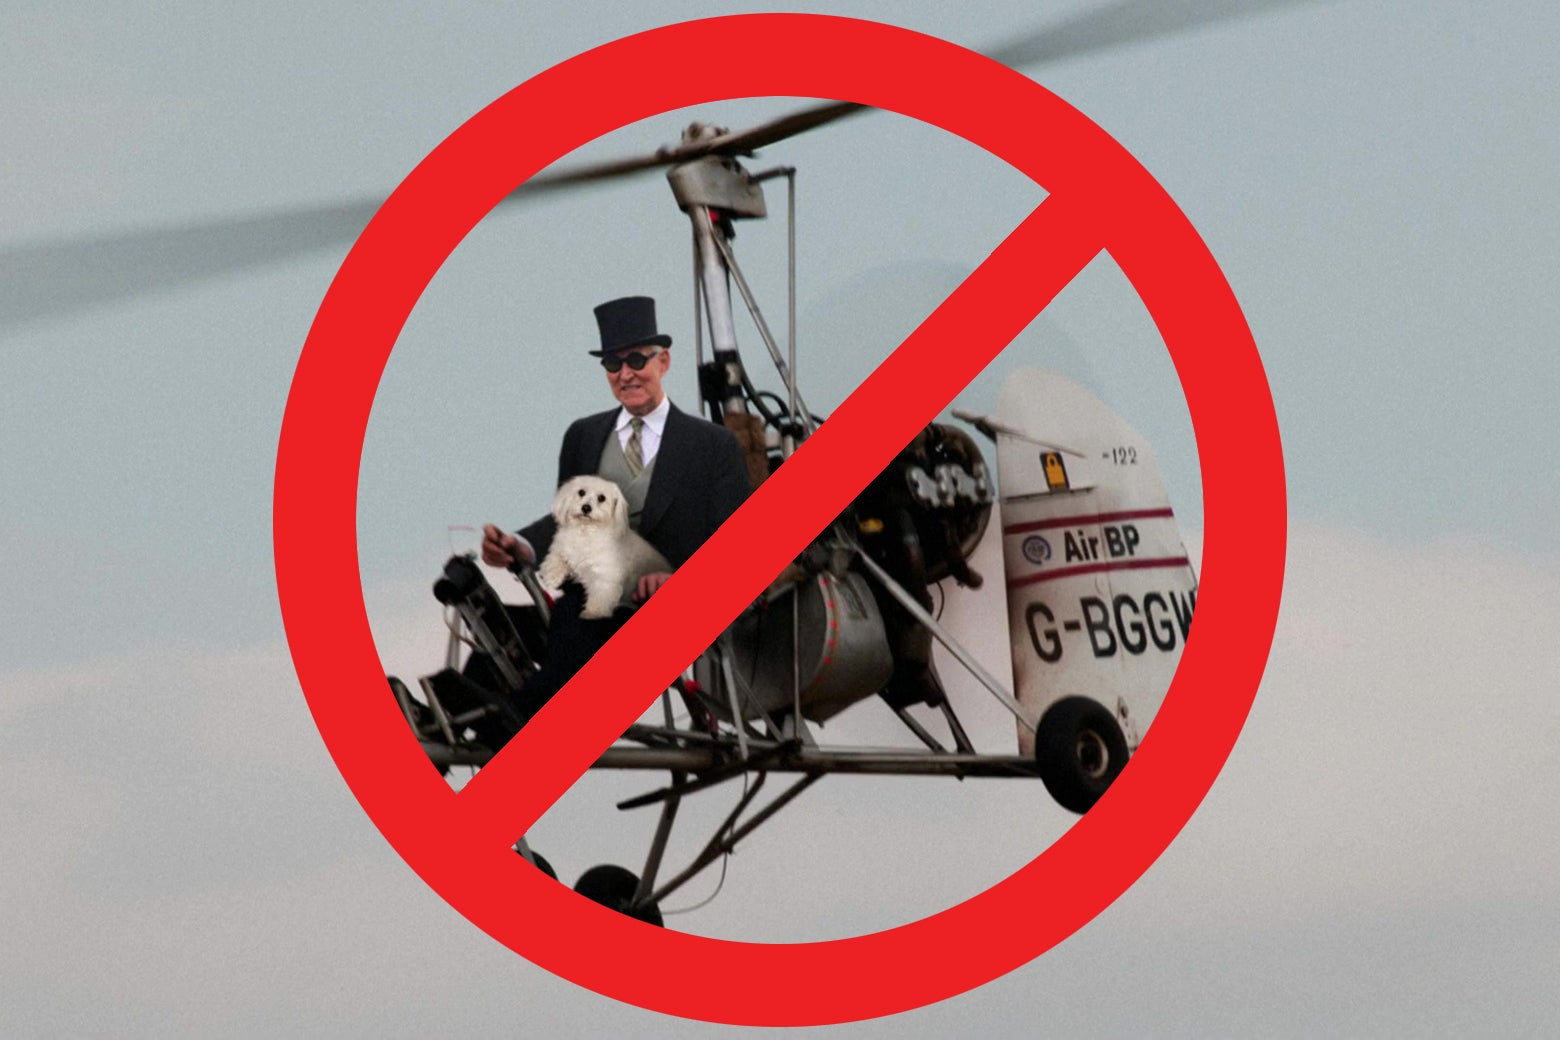 A photo of Roger Stone in an autogyro, with a big red circle and a slash through it superimposed.